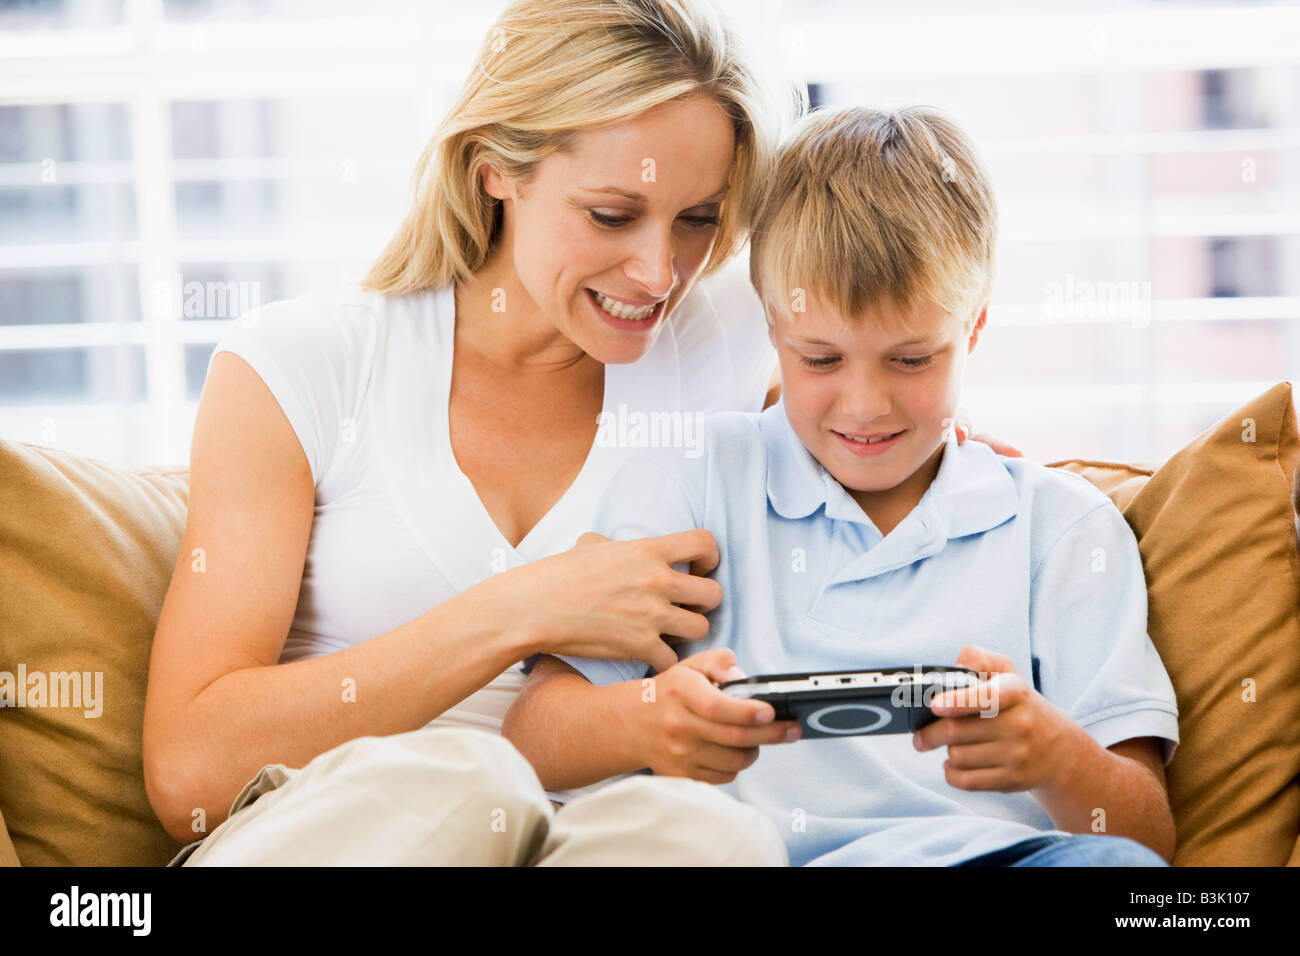 Woman and young boy in living room with handheld video game smiling Stock Photo